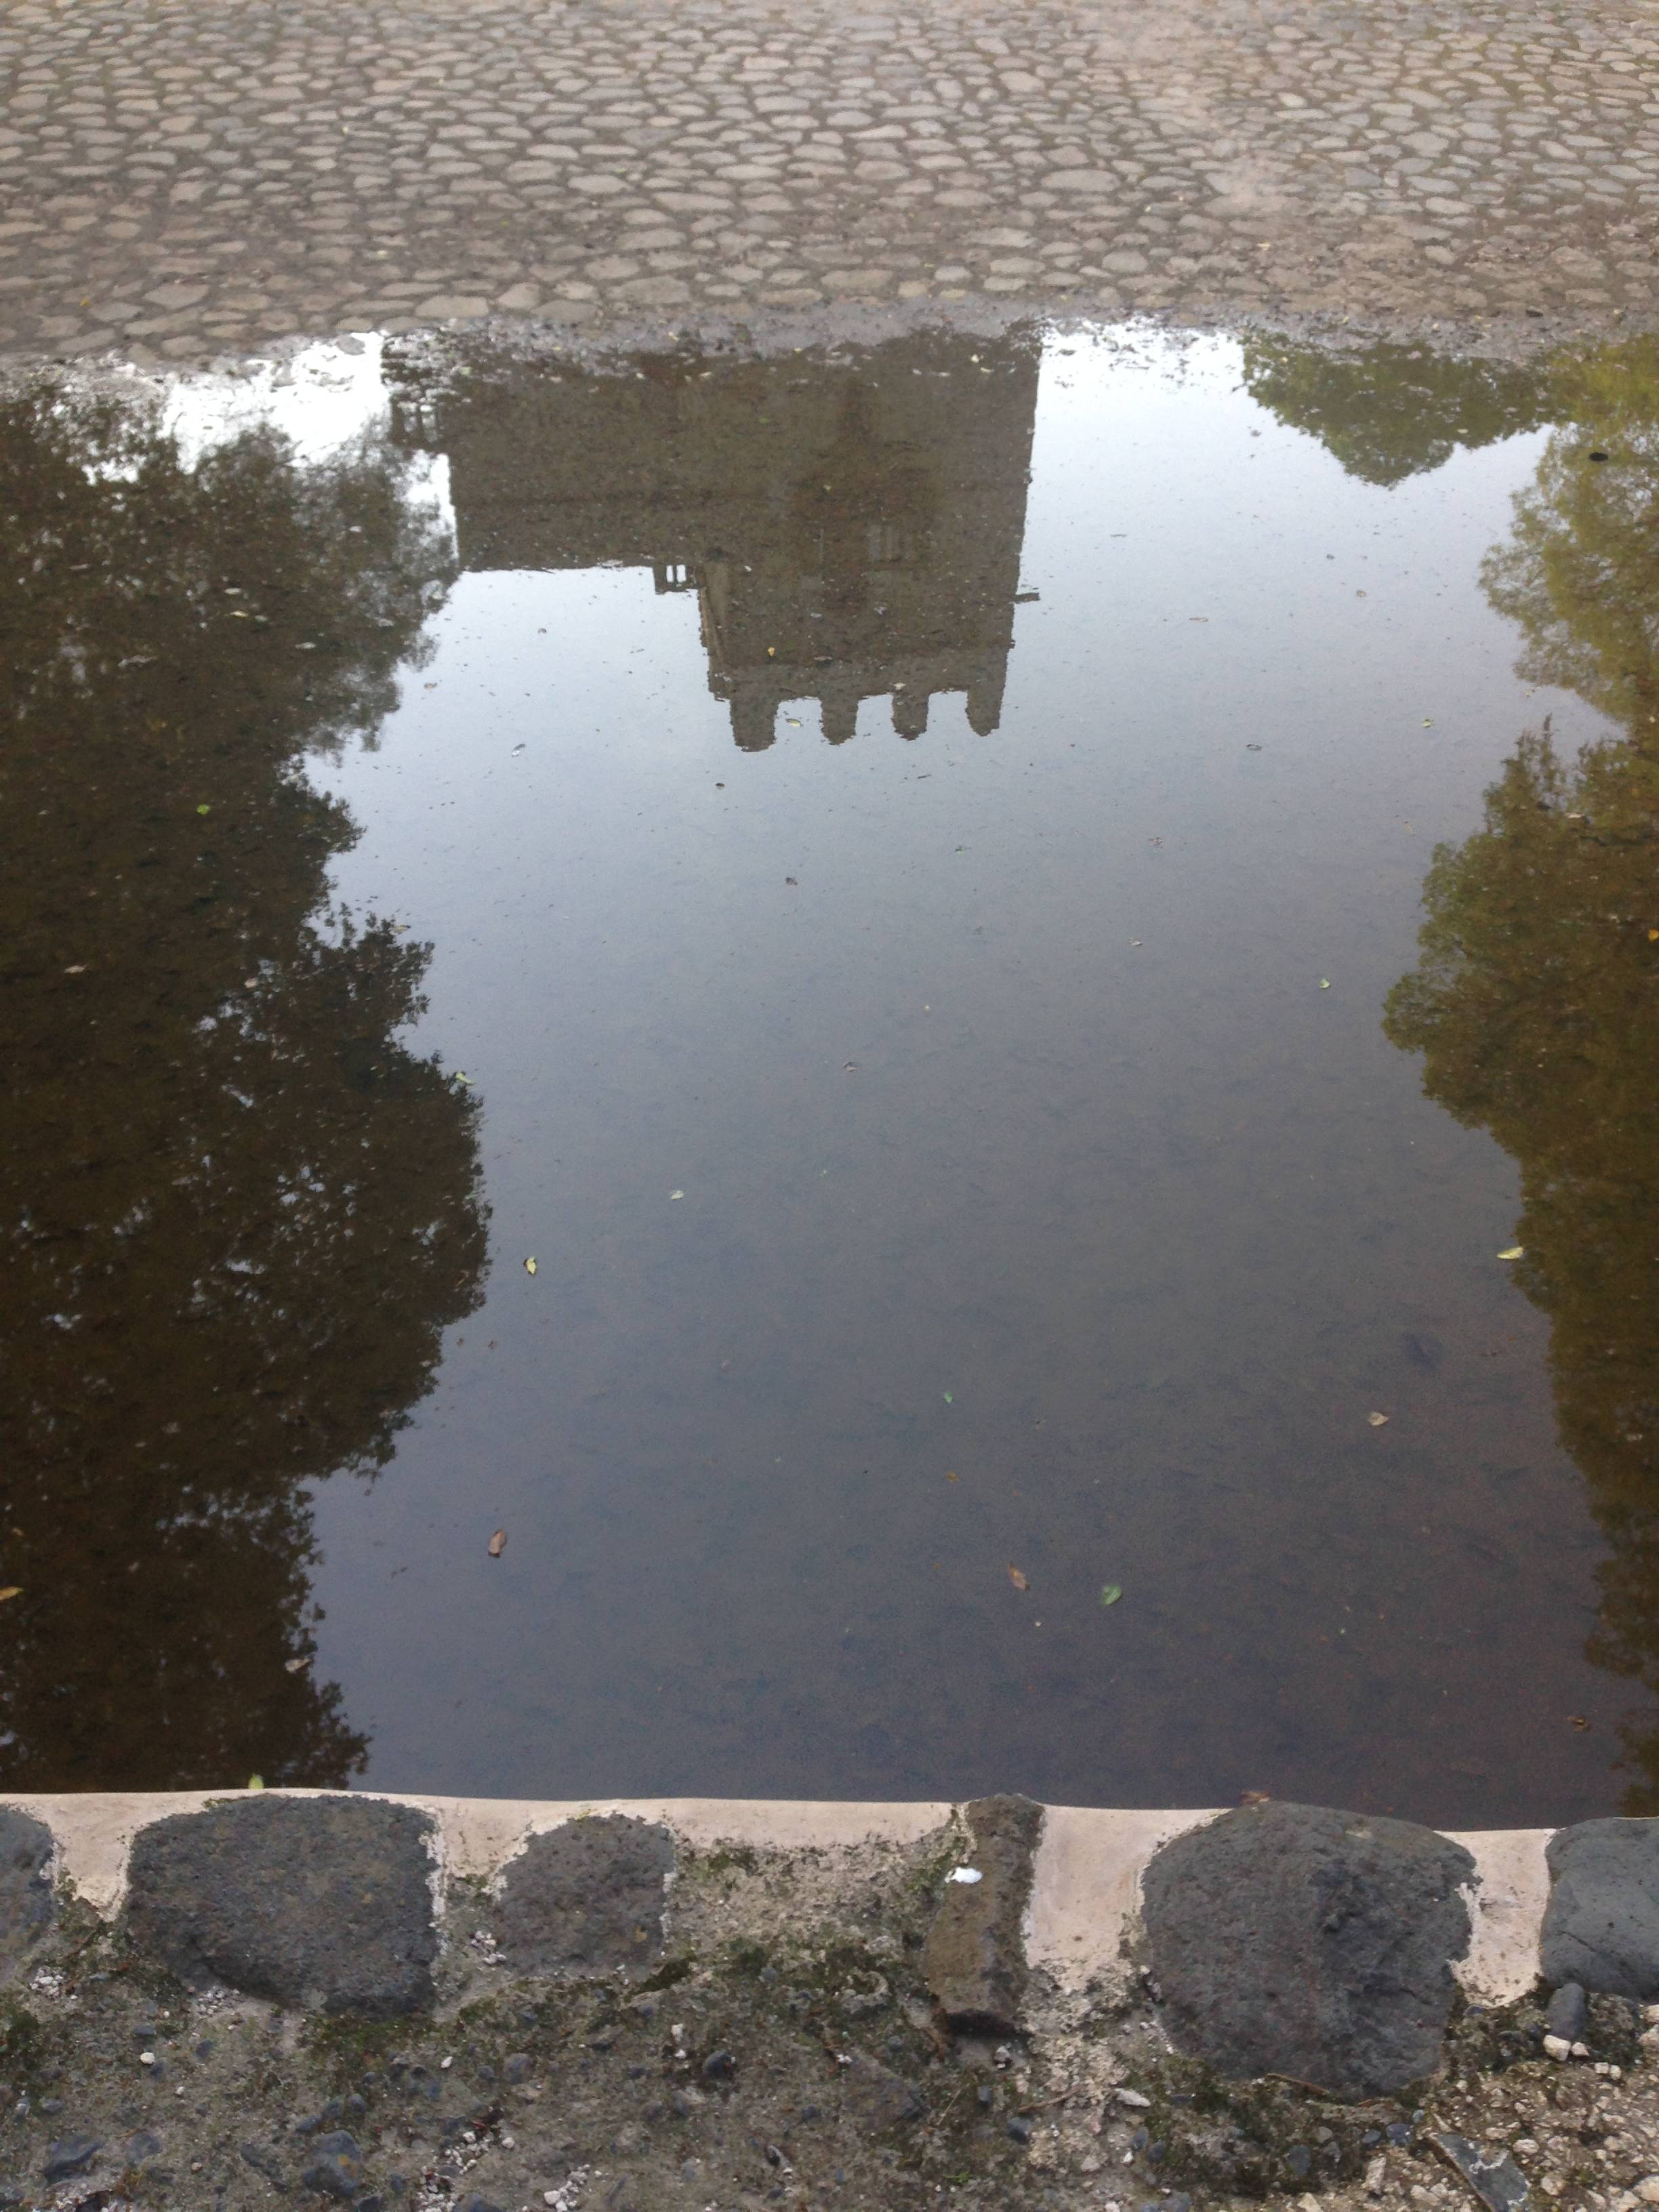 Reflection in the water of Haile Selassie's private family pool